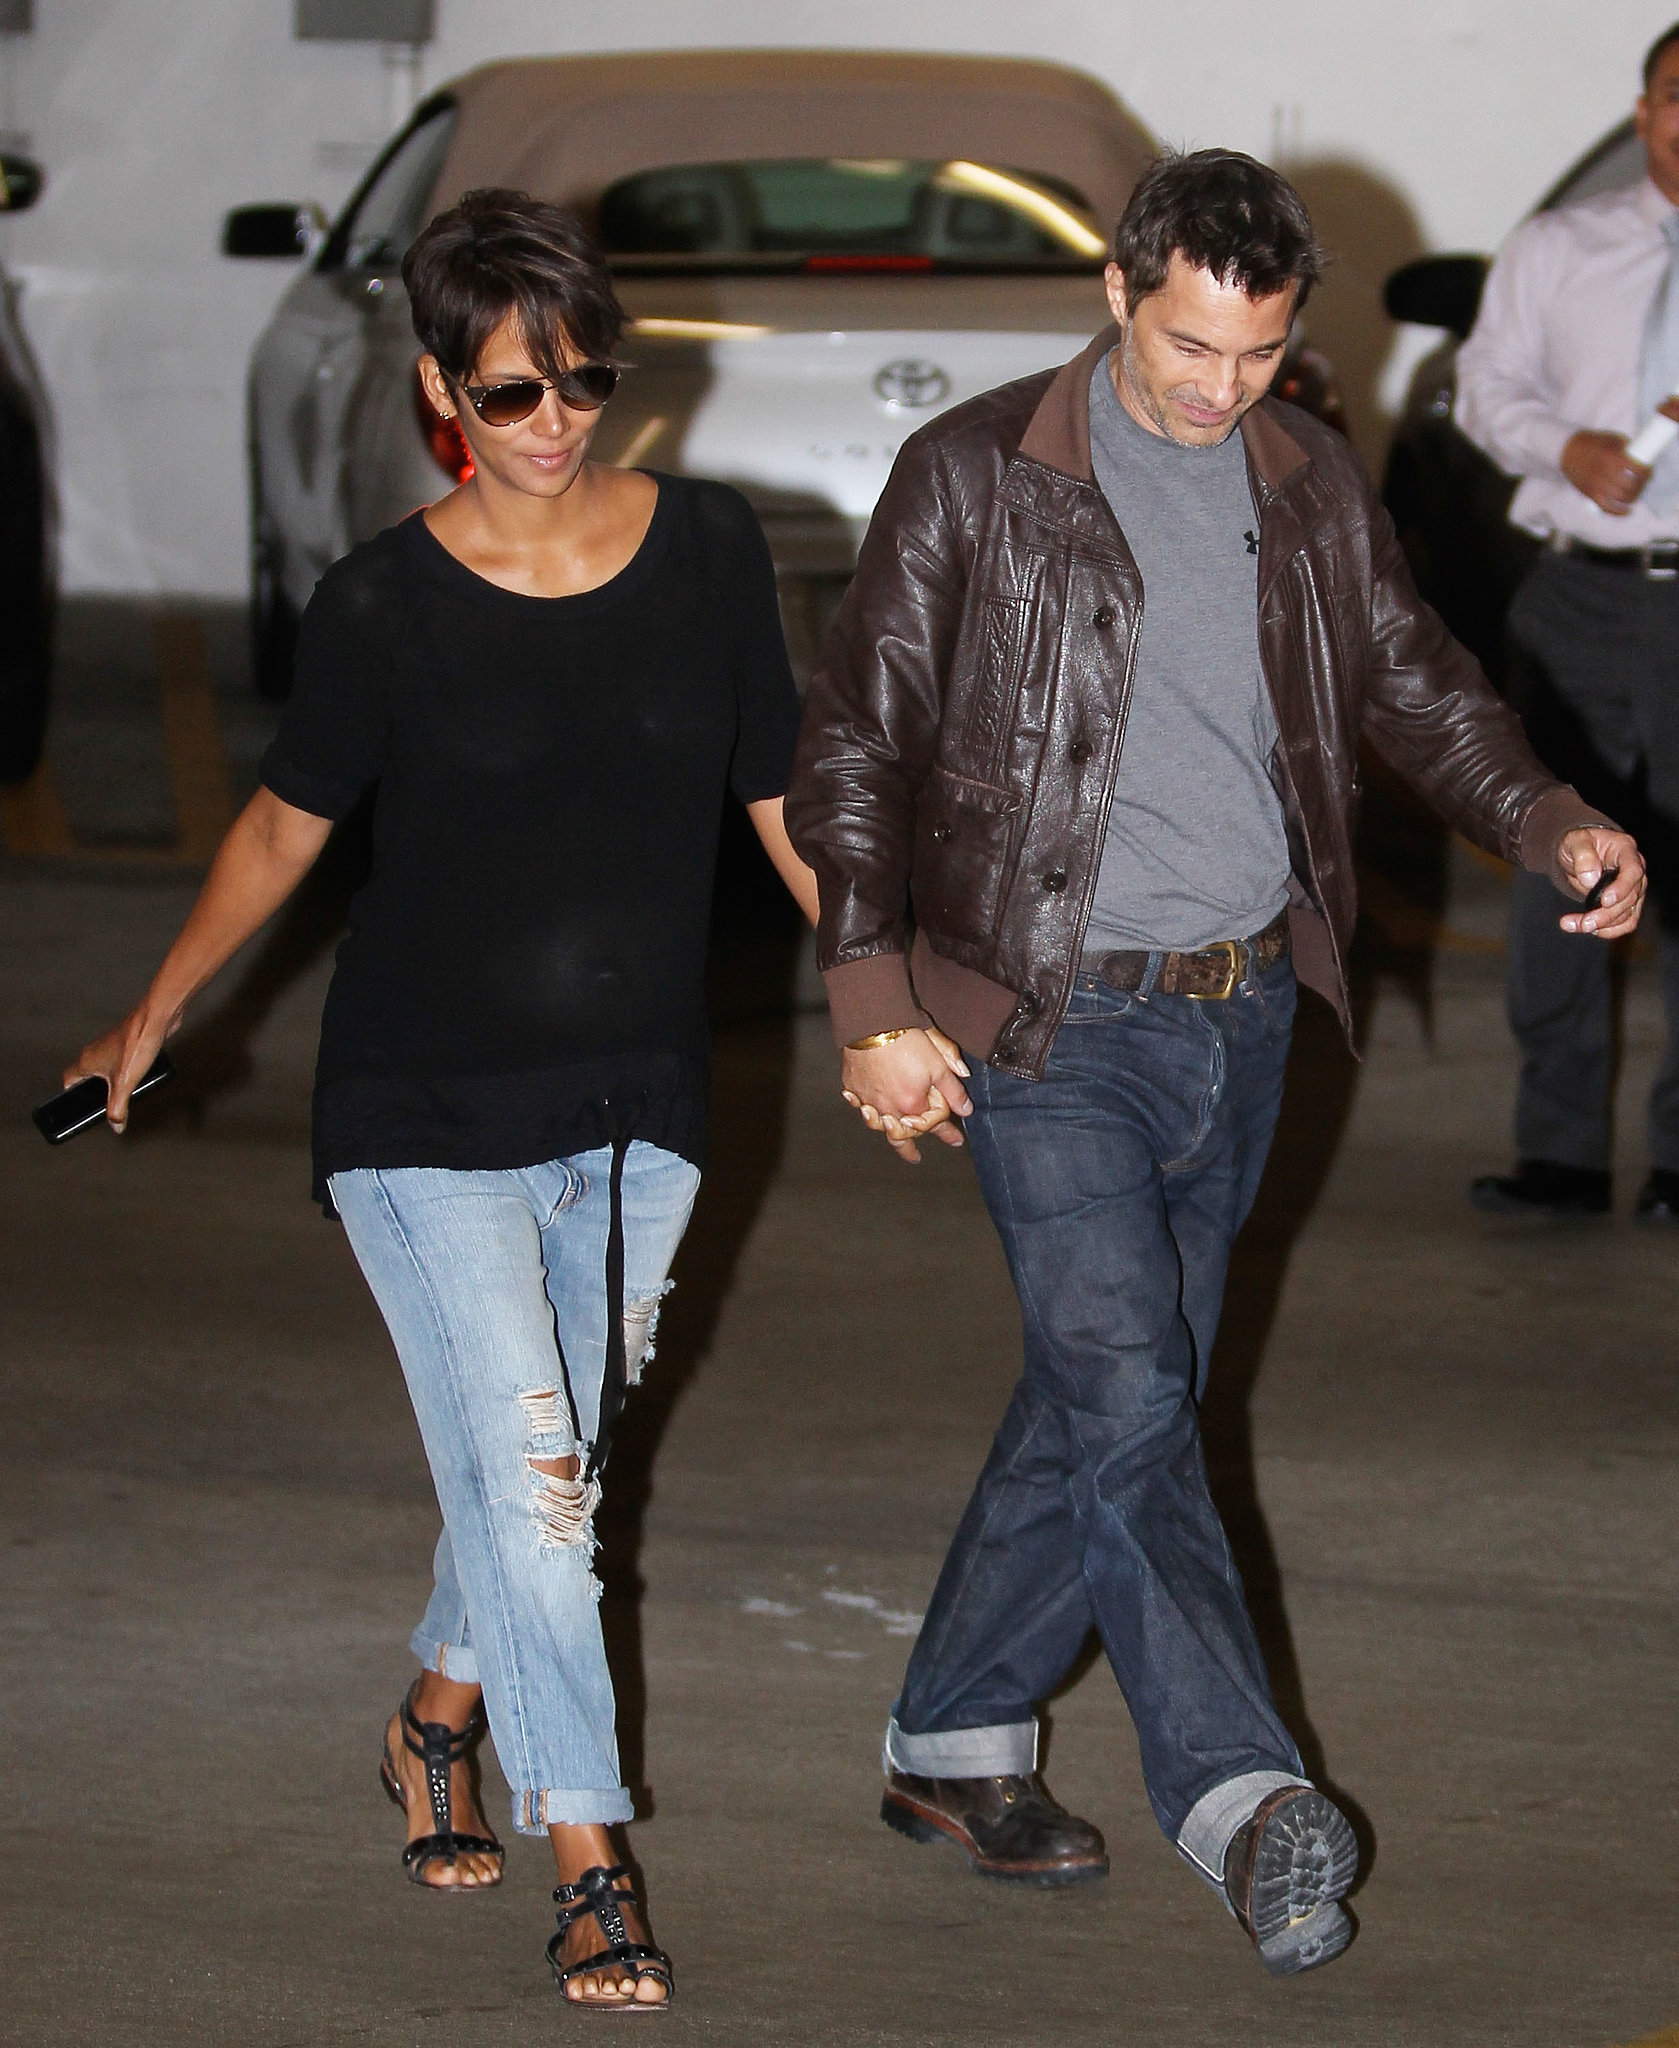 If there's ever a more comfortable time to rock boyfriend jeans than while pregnant, we'd like to hear about it. Halle perfected a low-key date night look with denim and a black tee.